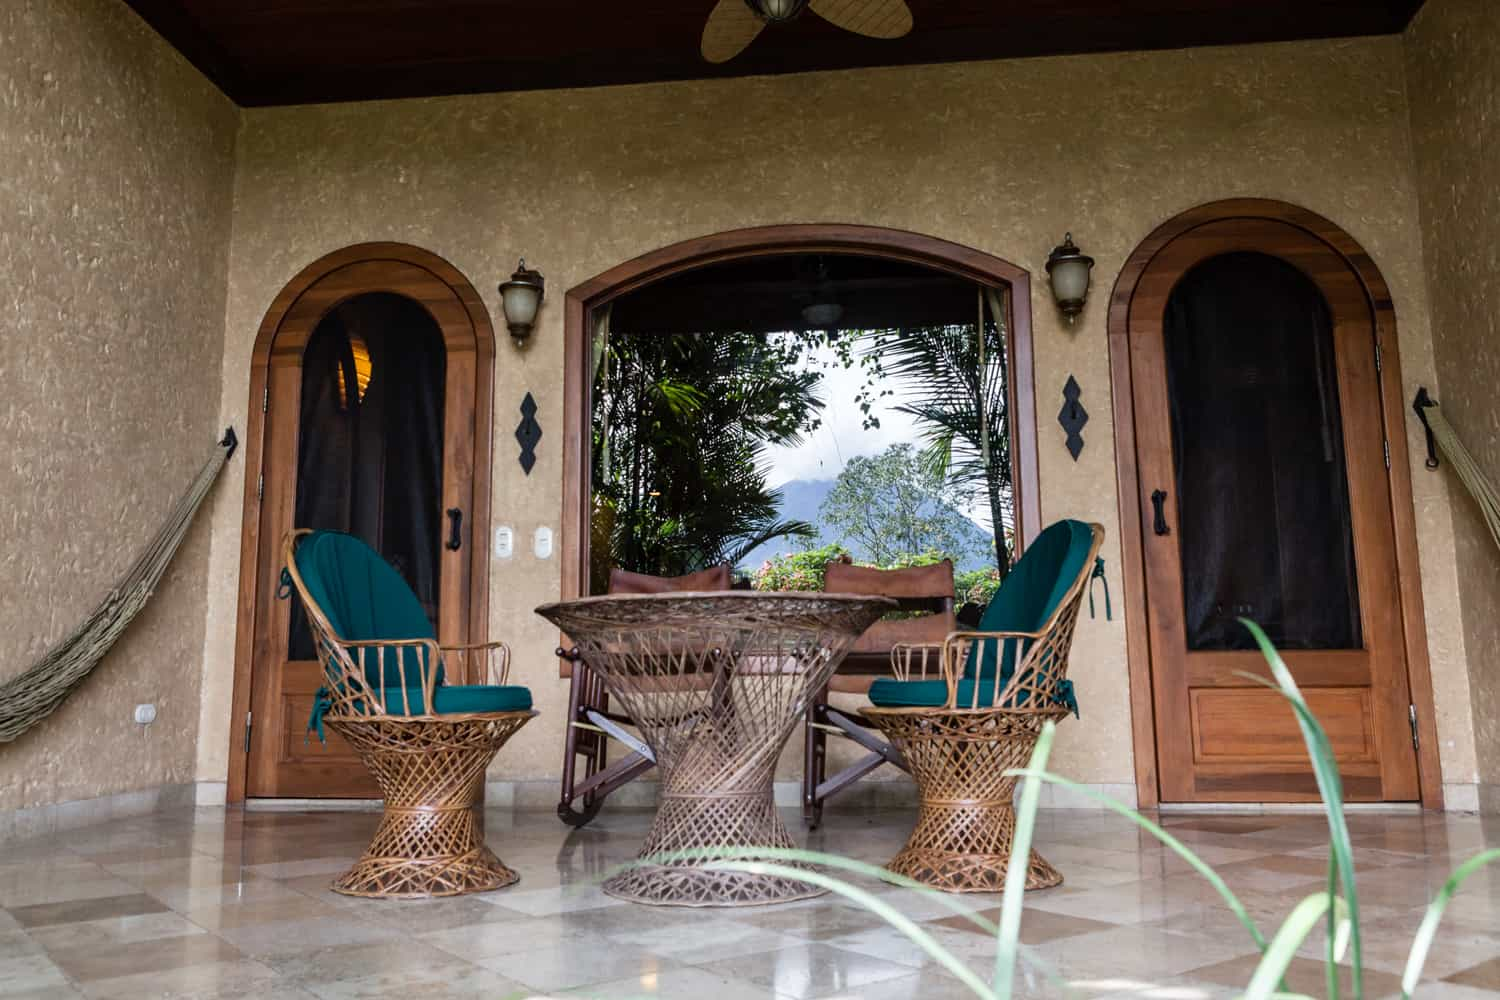 Honeymoon suite patio with hammocks and chairs.